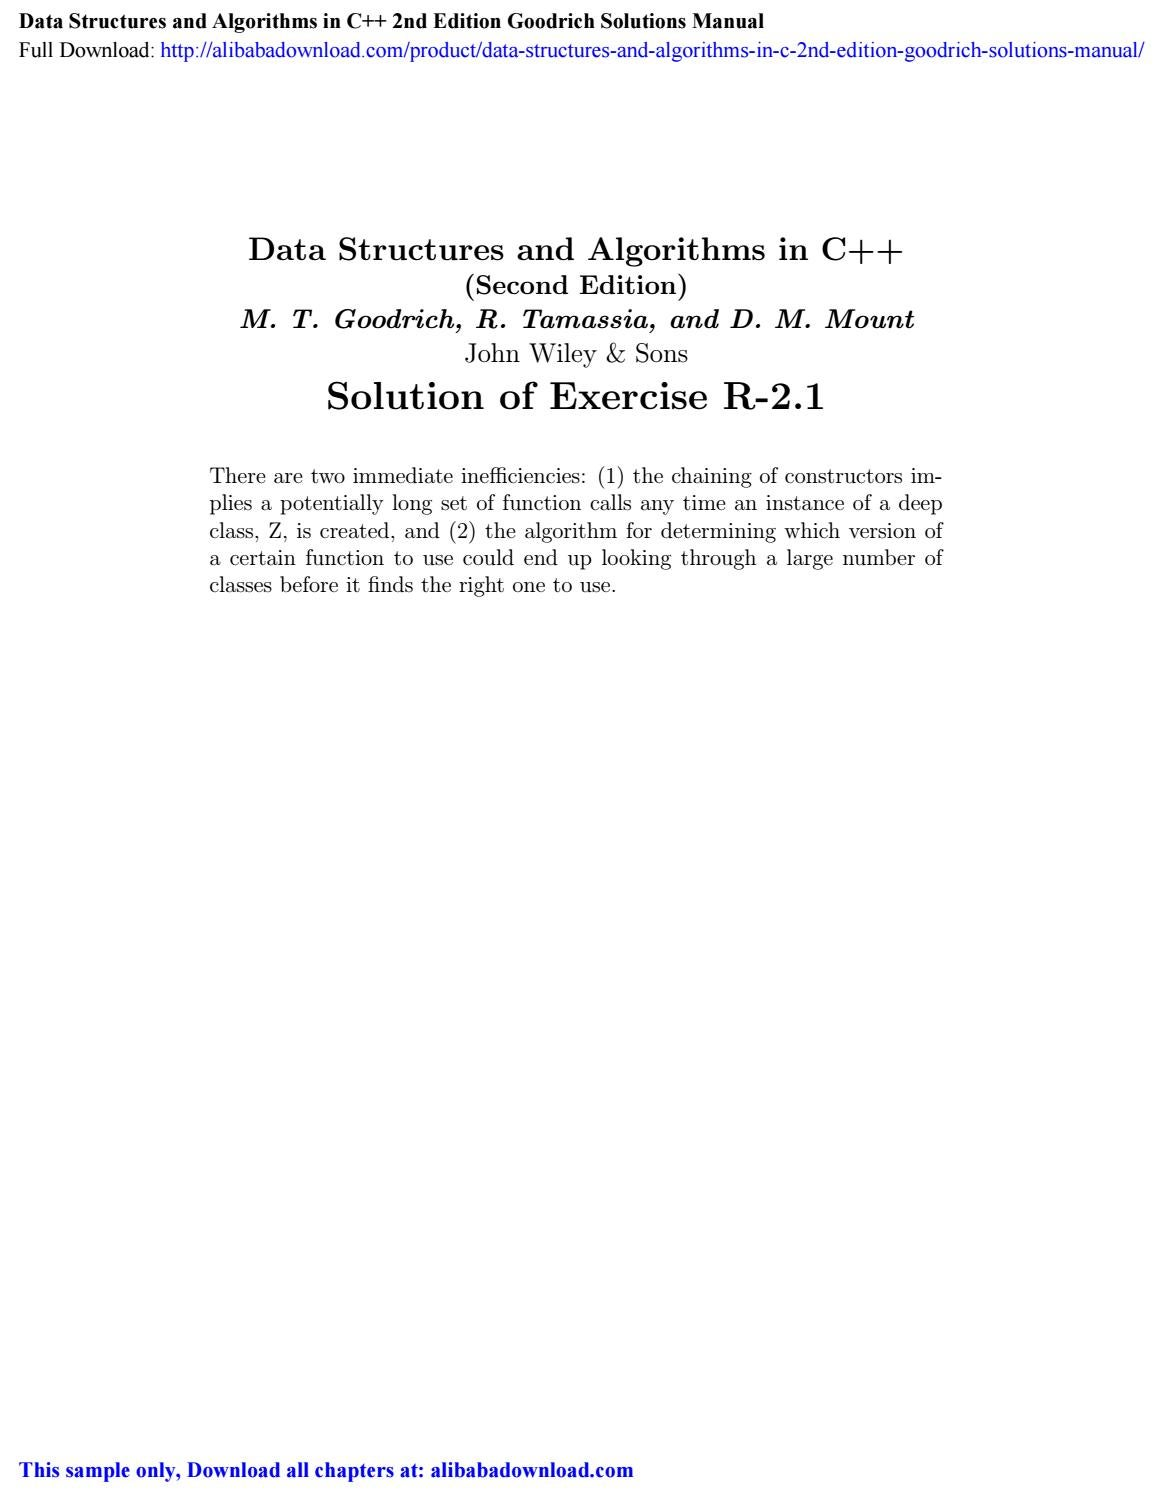 Data Structures And Algorithms In C 2nd Edition Goodrich Solutions Manual By Coleman Issuu,Minimalist Kitchen Design Black